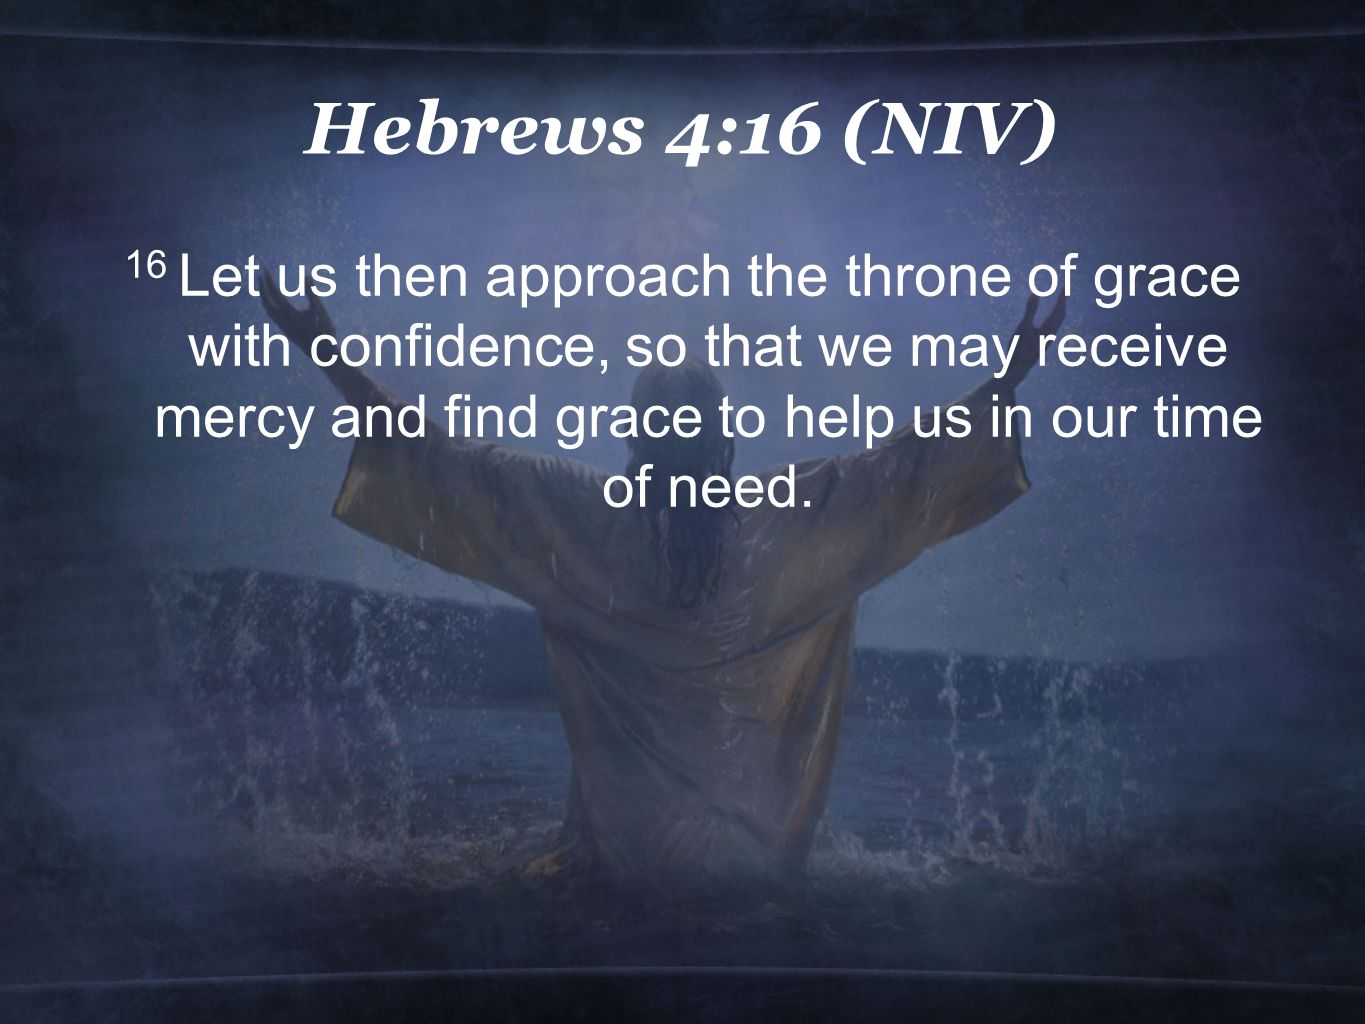 Hebrews 4:16 (NIV) 16 Let us then approach the throne of grace with confidence, so that we may receive mercy and find grace to help us in our time of need.